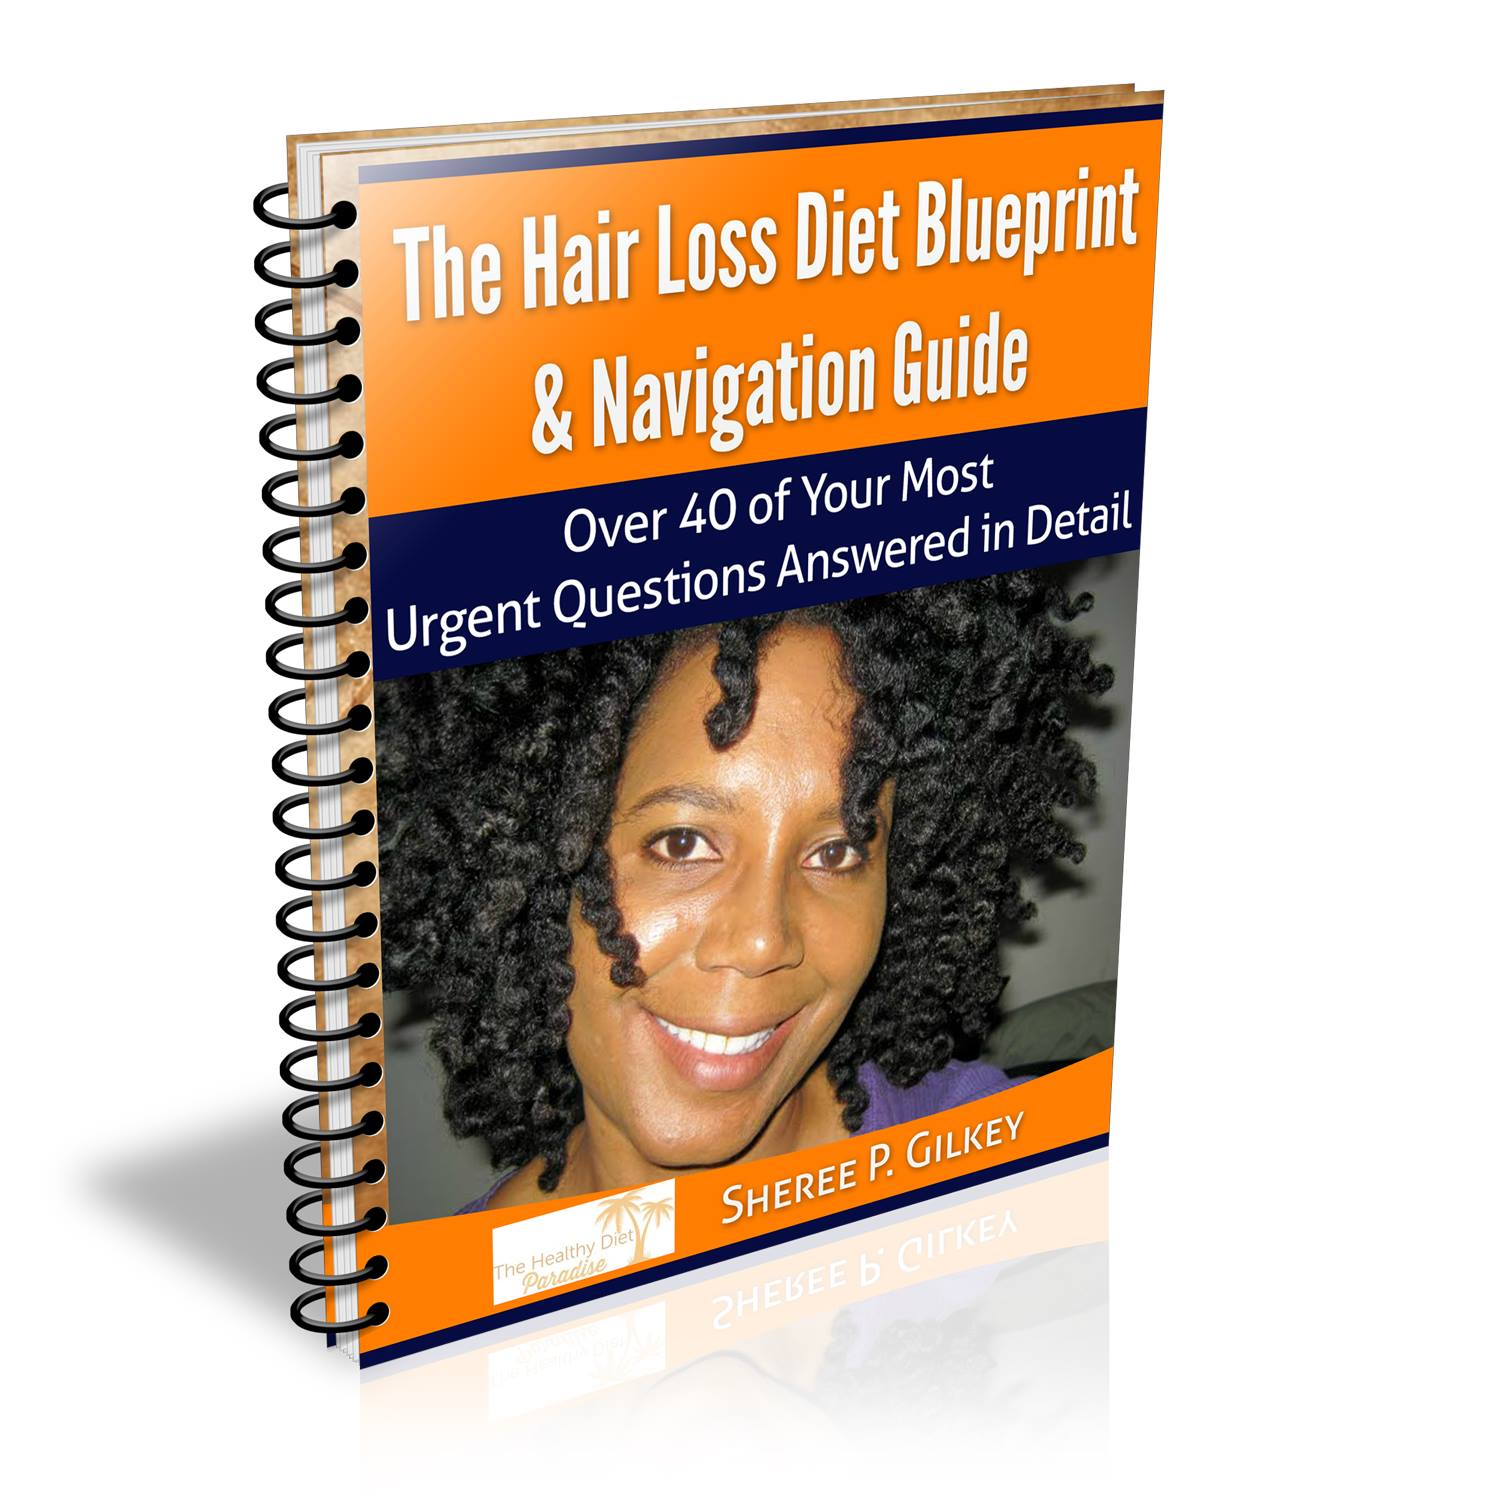 Hair loss diet ebook blueprint navigation guide malvernweather Gallery